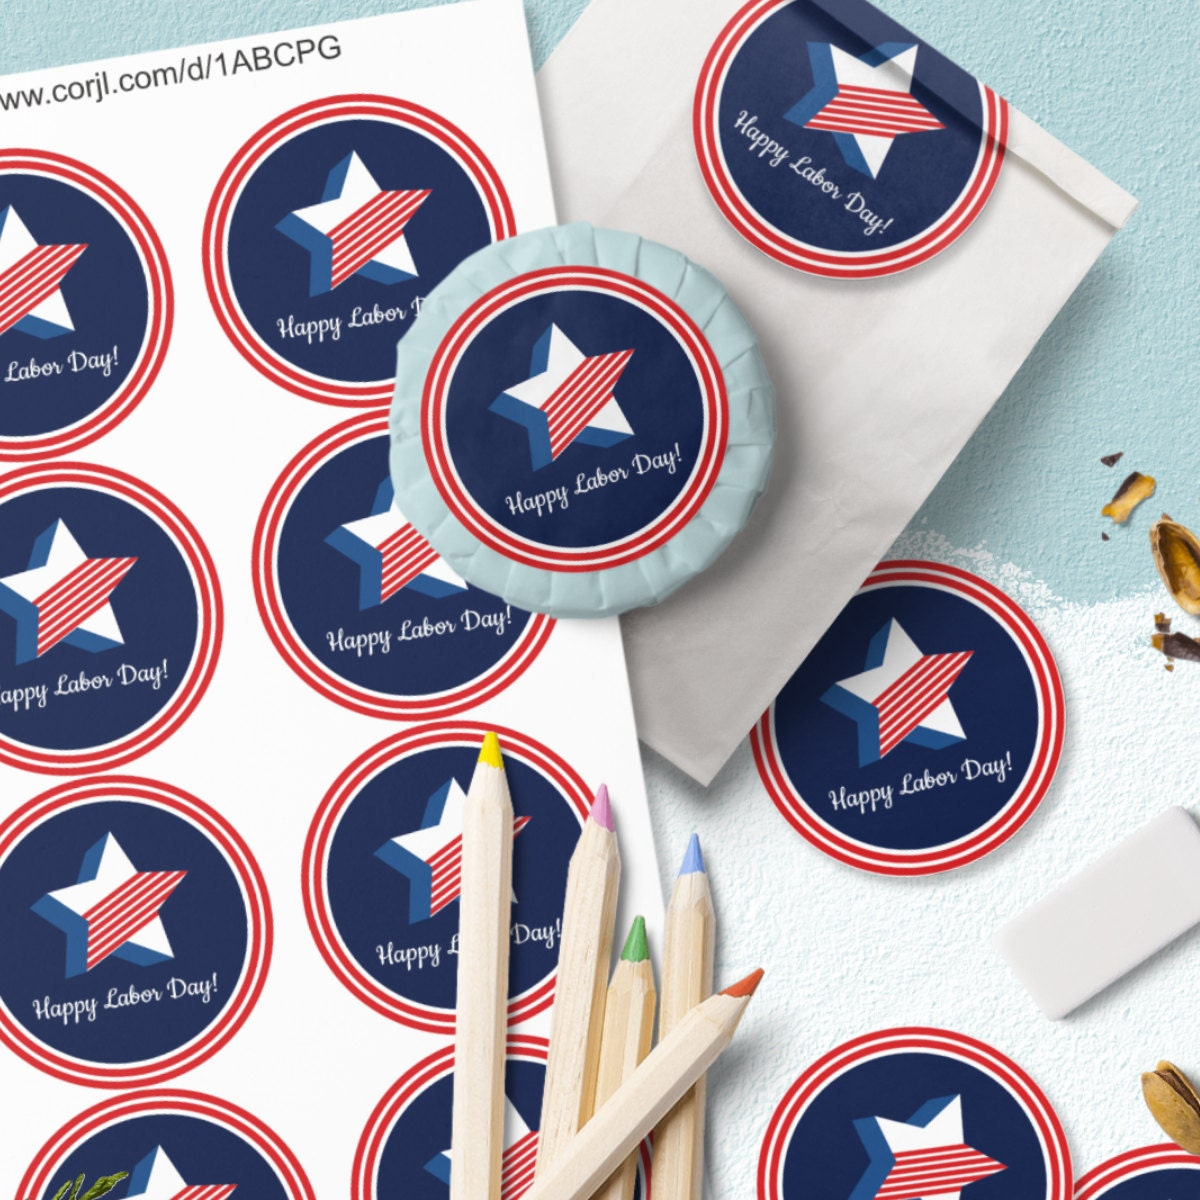 Happy Labor Day Free Printable Labels